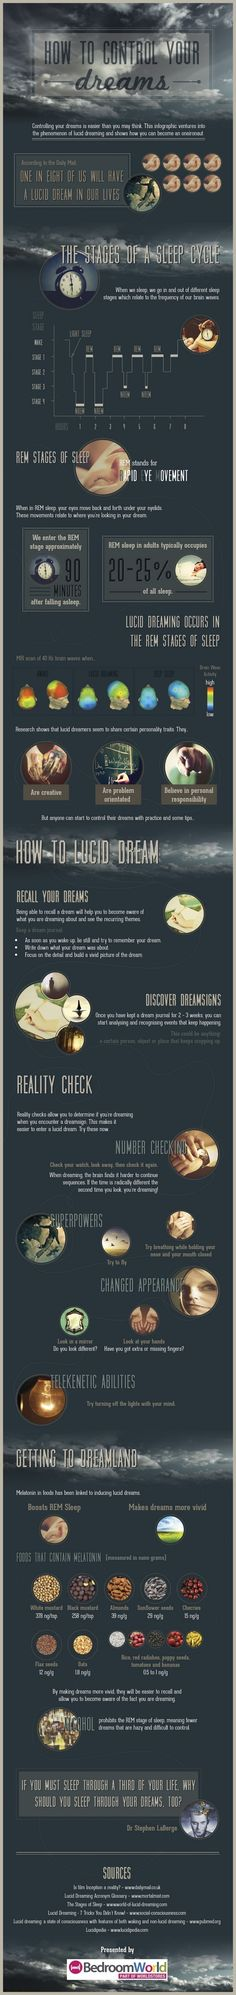 How to Lucid Dream in a Few Weeks - RagTag Riot